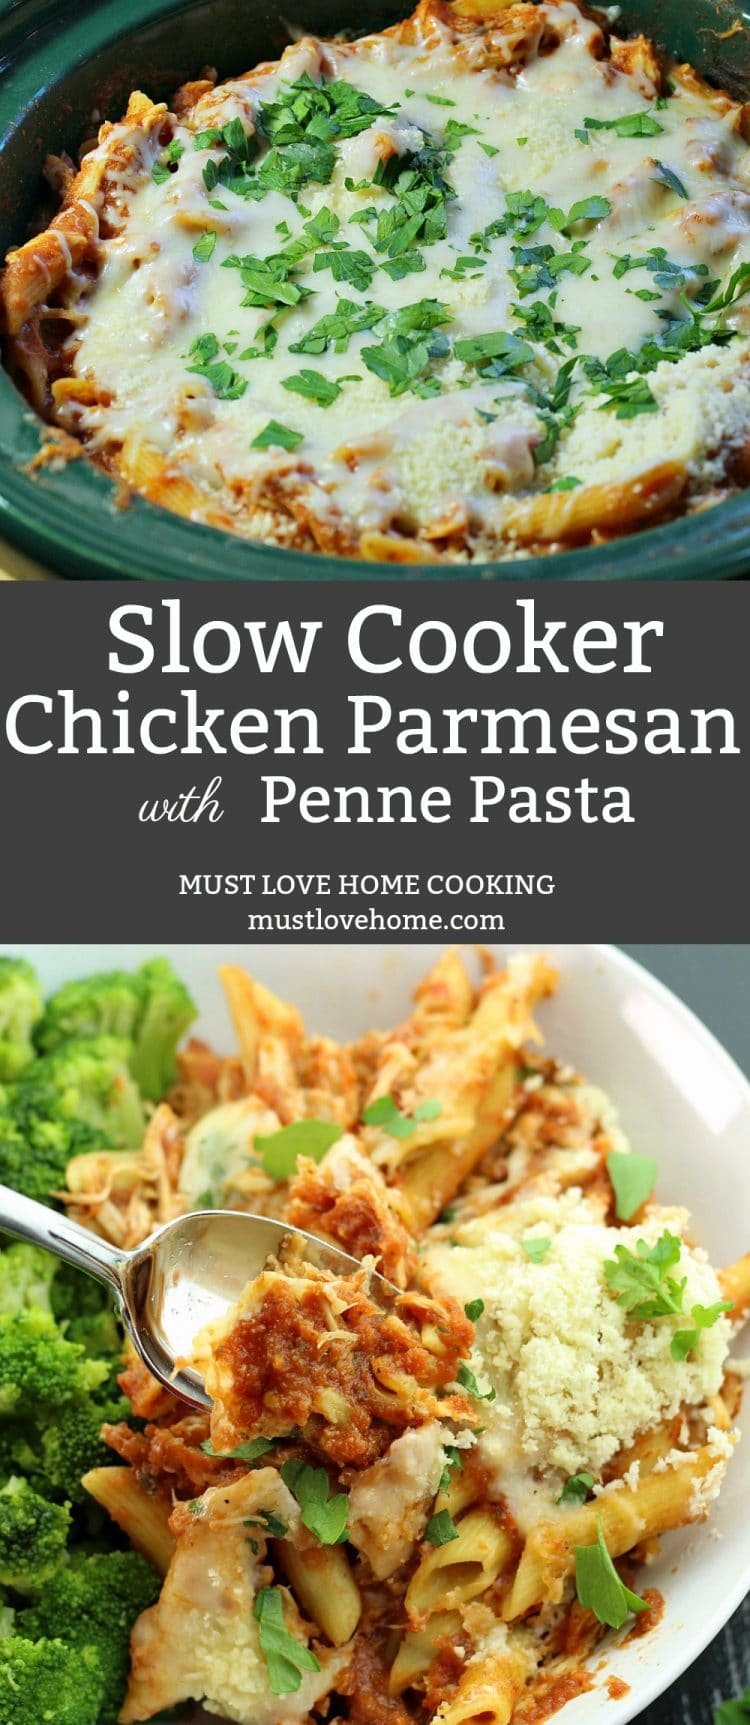 One bite of this easy cook meal and it will be a new favorite. No more hassle - this Italian classic is made completely in the slow cooker, even the pasta!